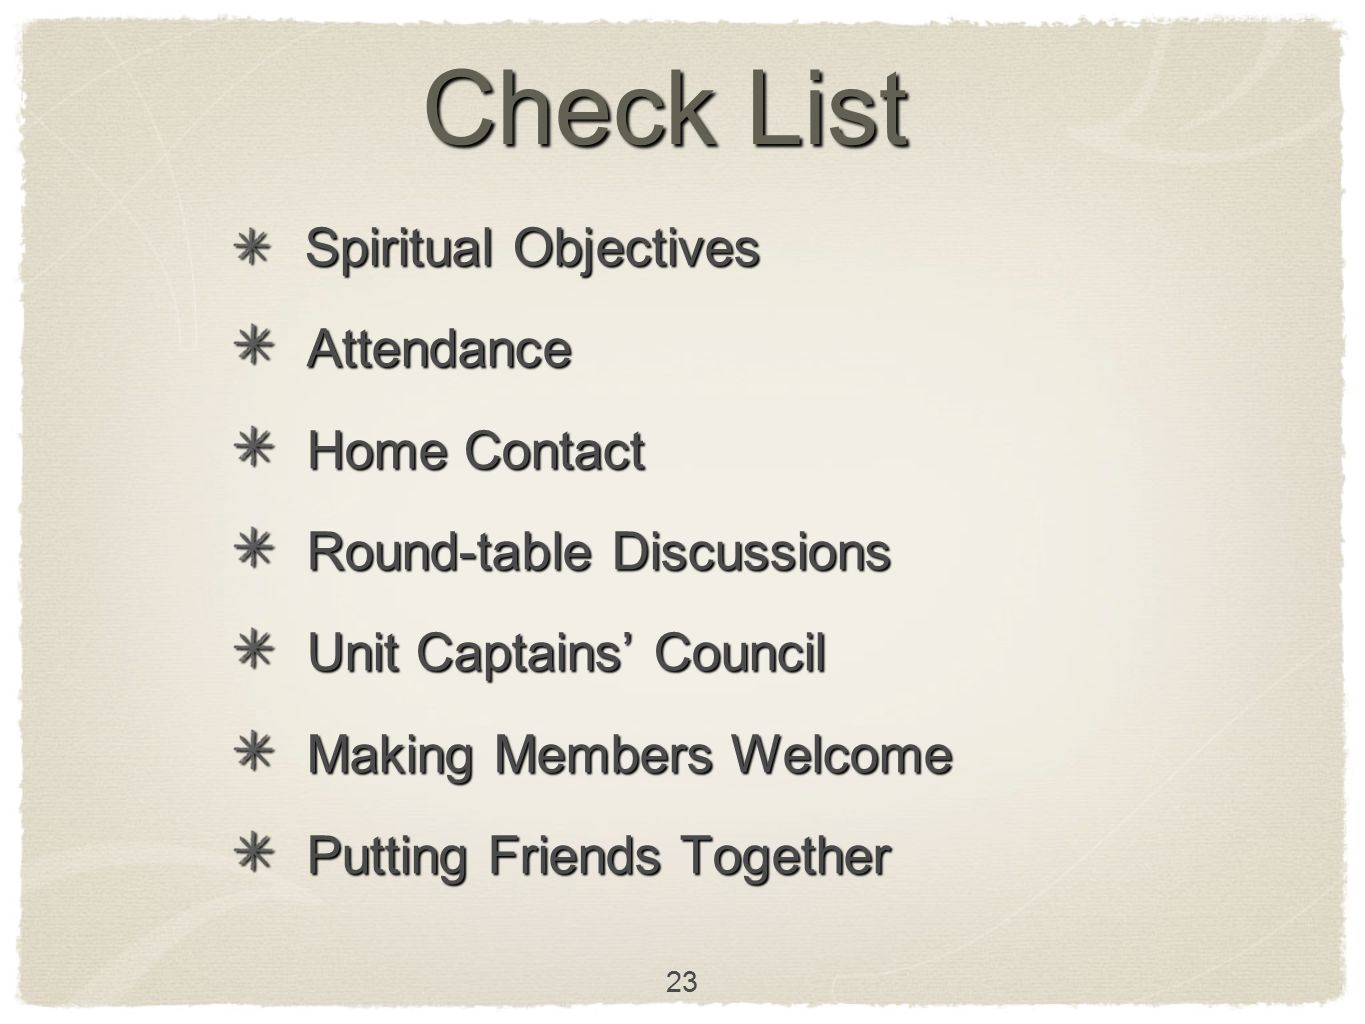 Check List Attendance Home Contact Round-table Discussions